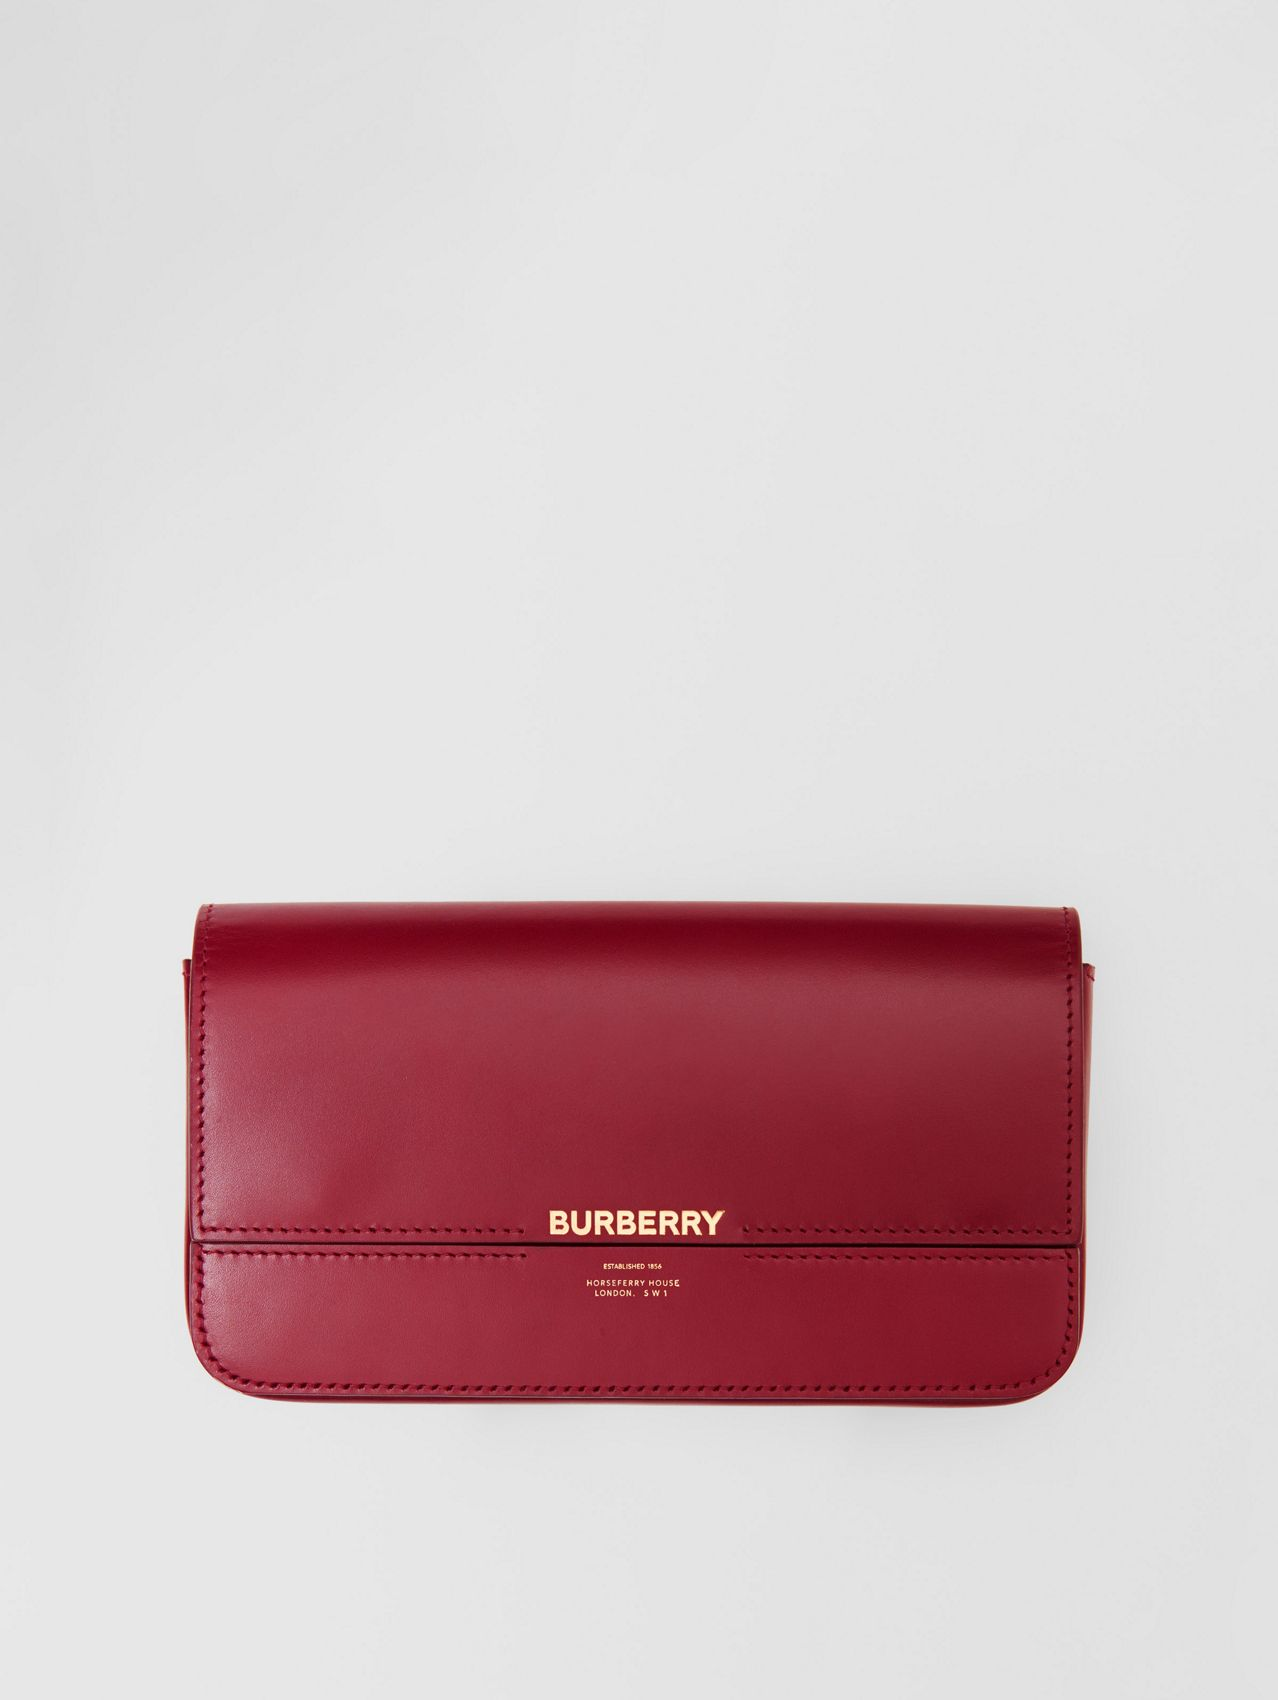 Leather Wallet with Detachable Chain Strap in Dark Crimson